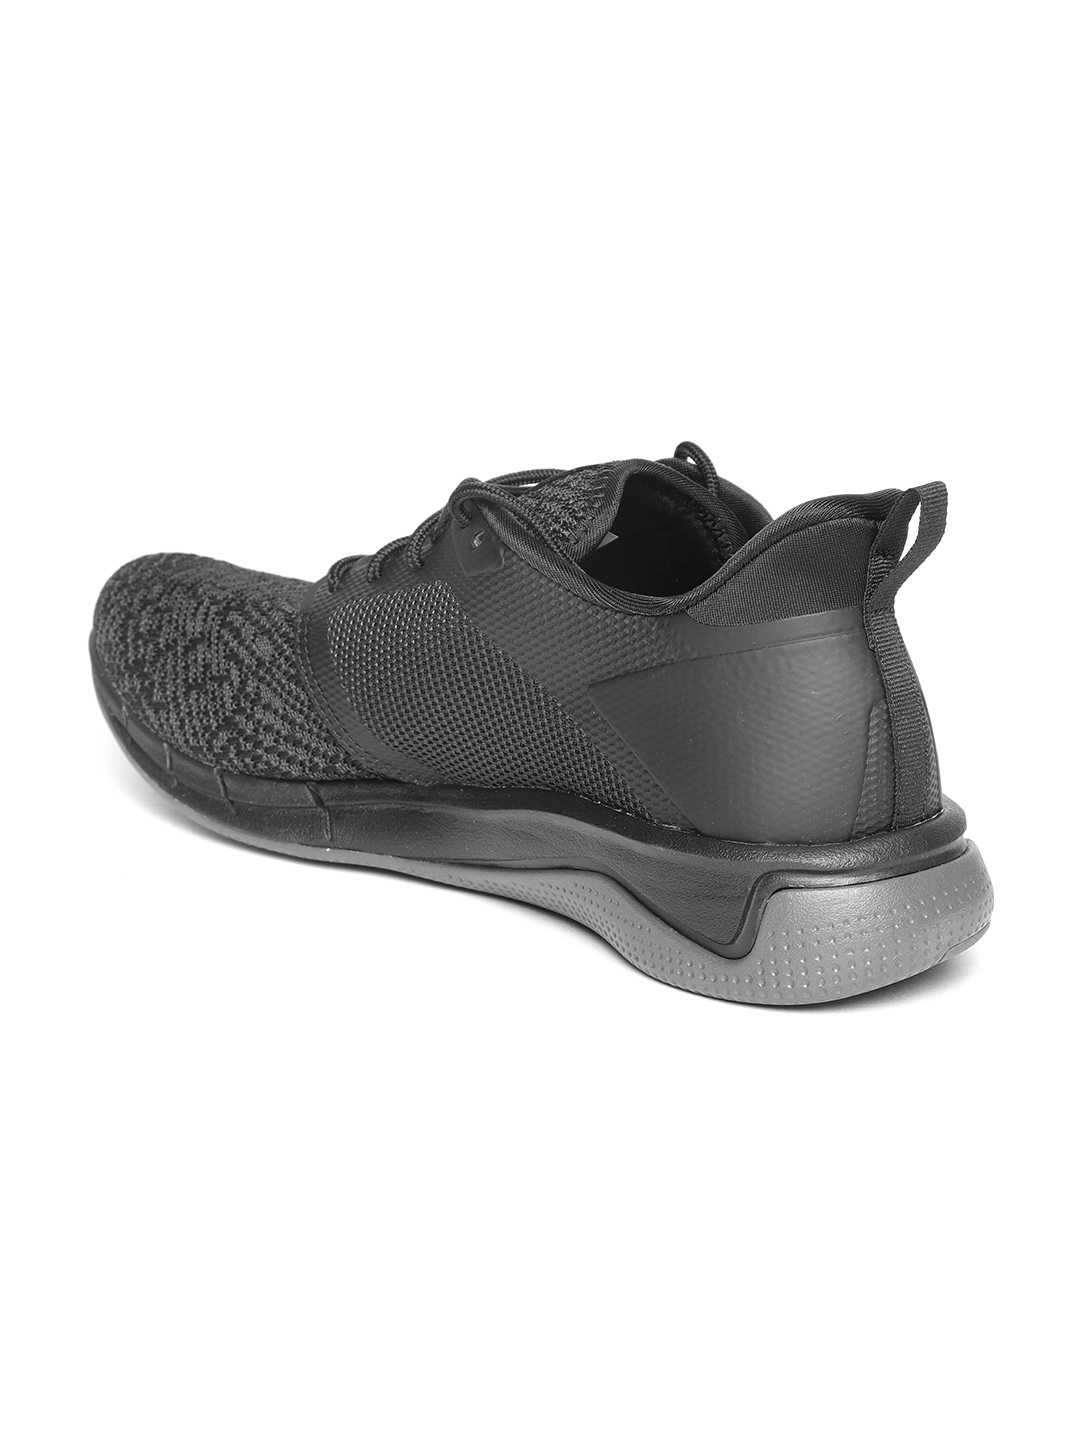 b9ad41ab6c0138 Buy Reebok Men Black   Grey Print Run 3.0 Patterned Running Shoes ...